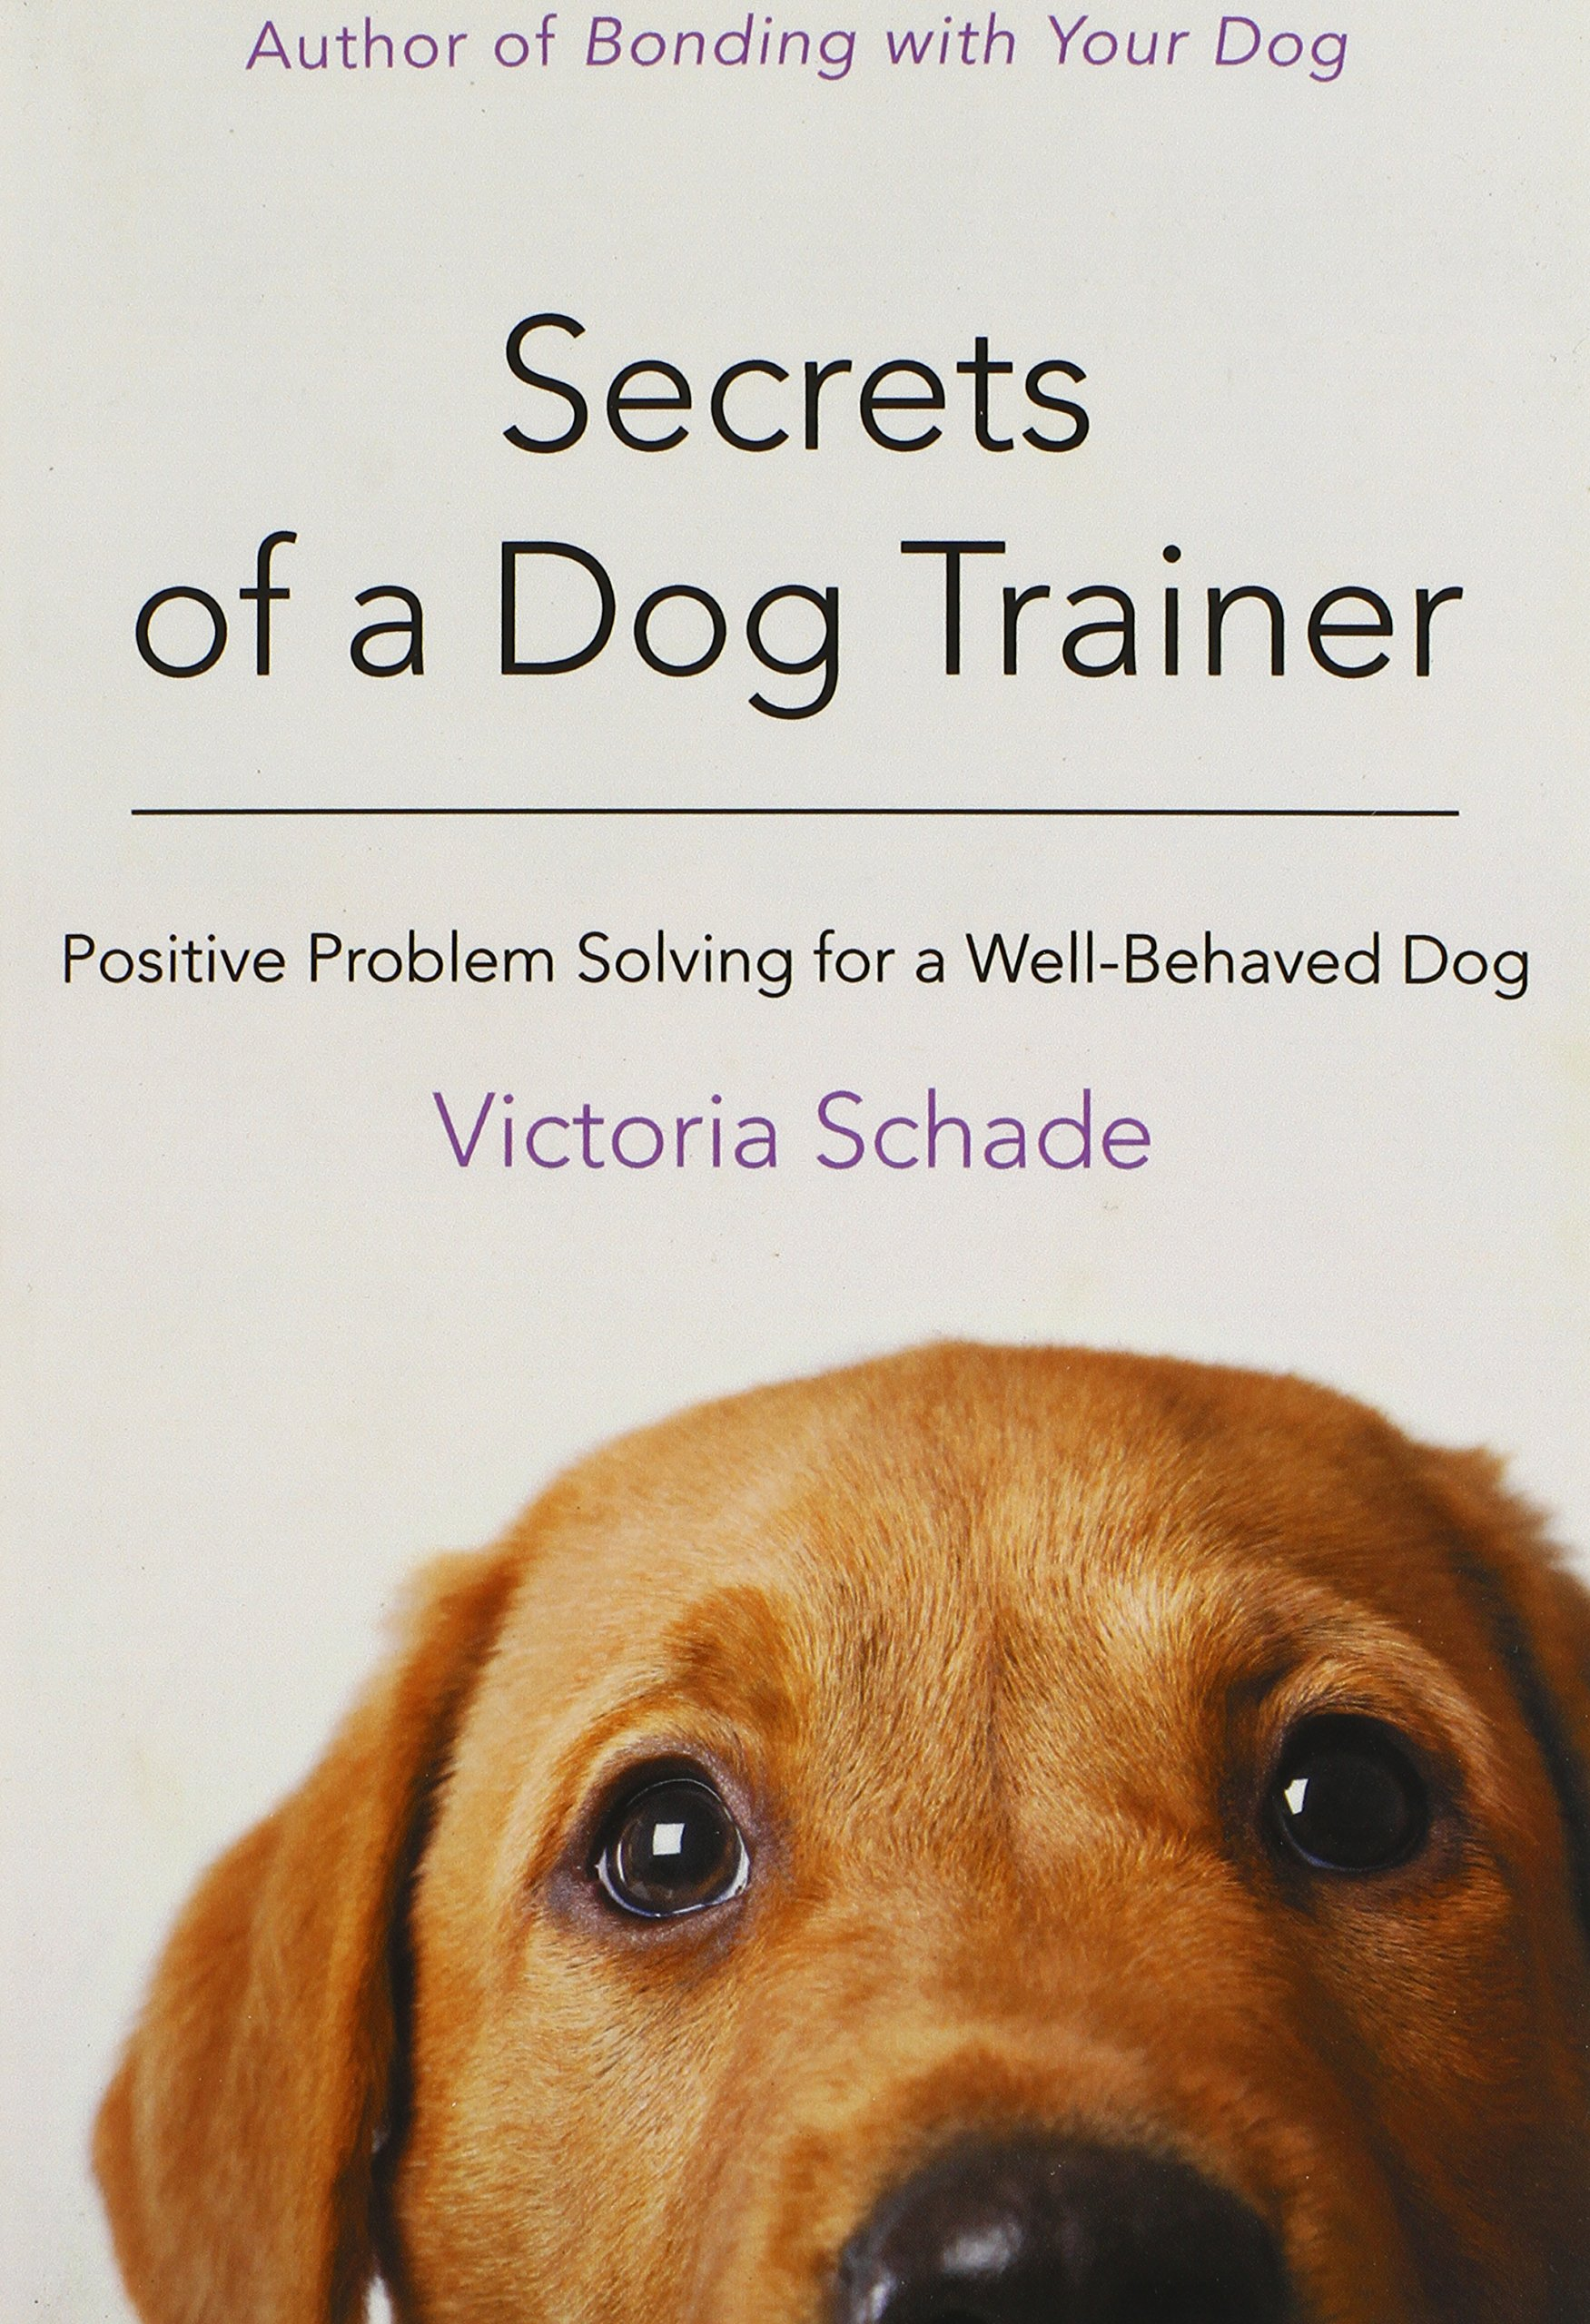 Secrets-of-a-Dog-Trainer-Positive-Problem-Solving-for-a-Well-Behaved-Dog